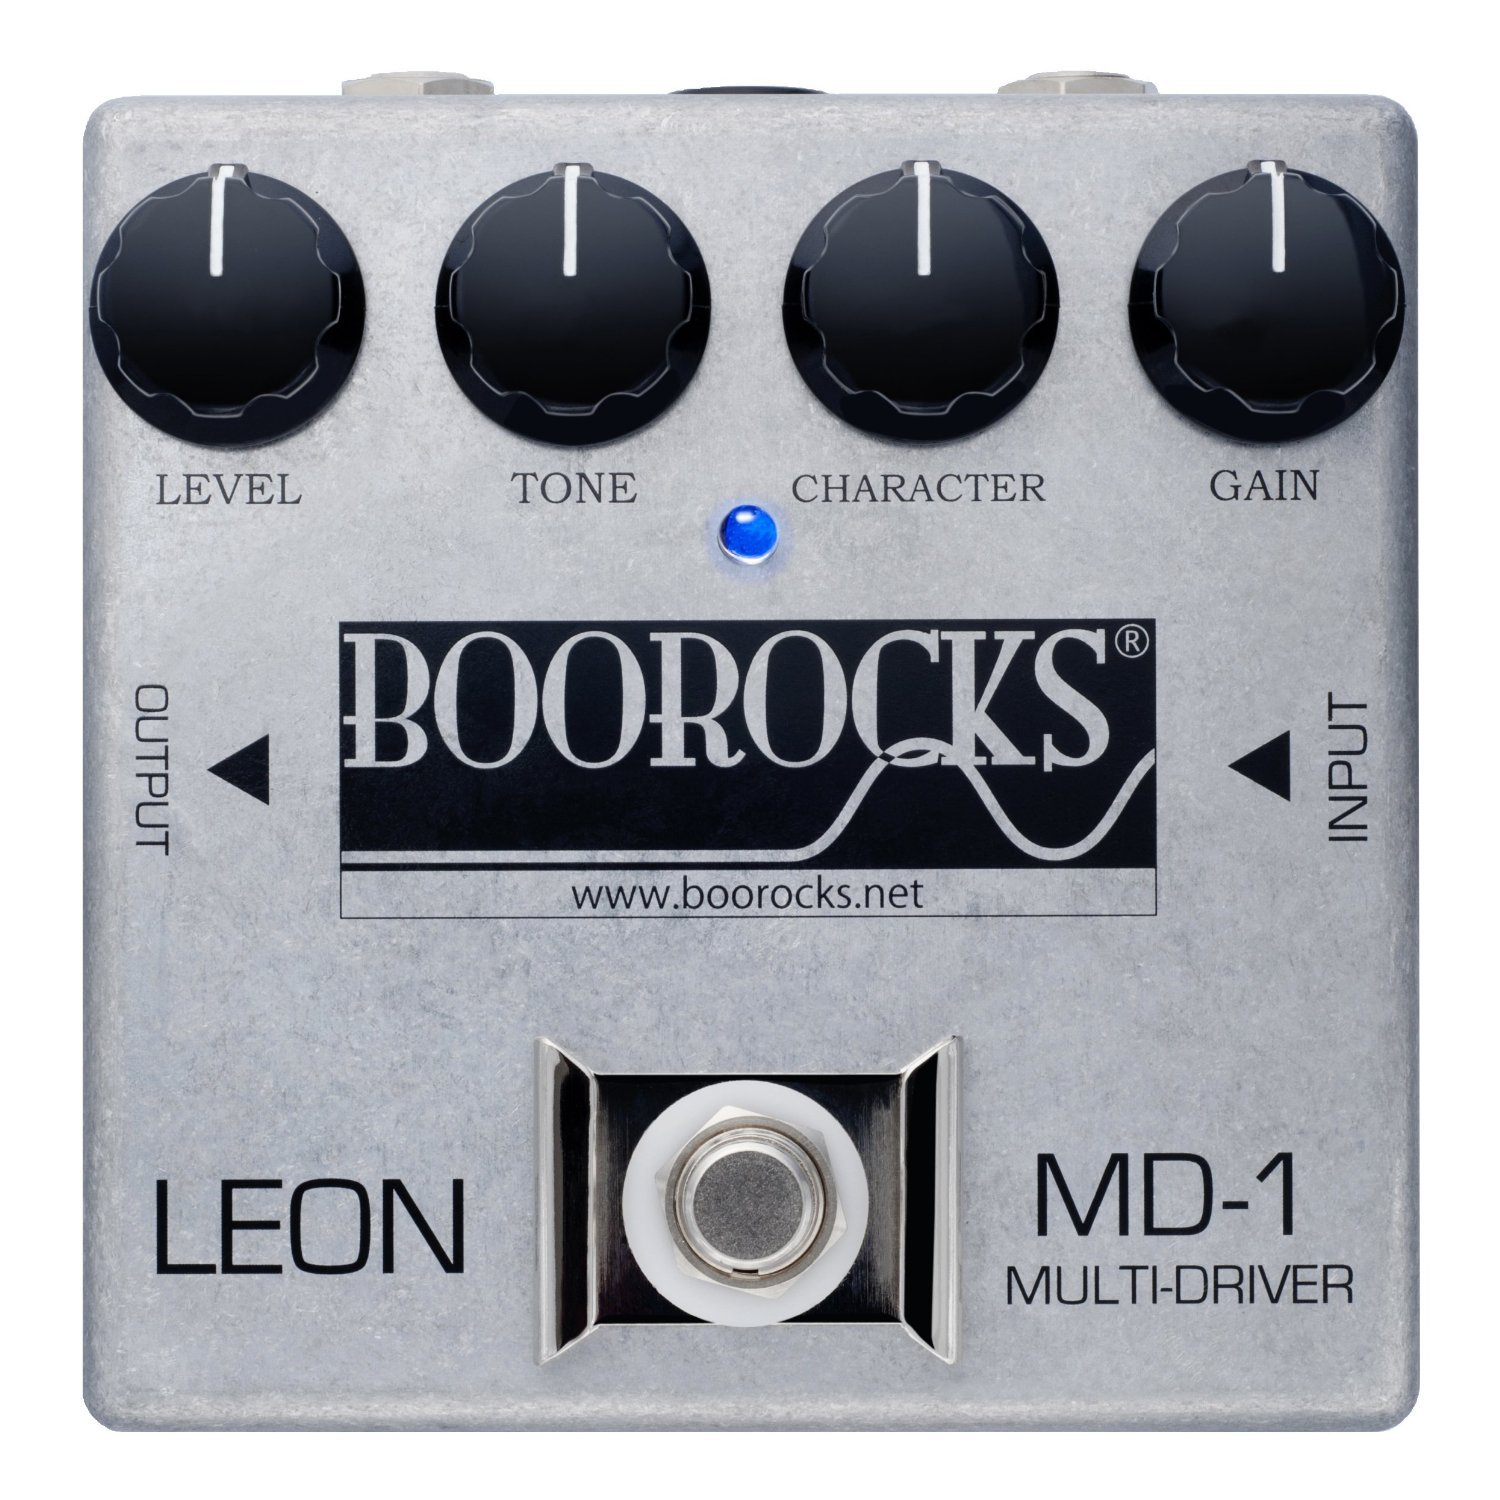 BOOROCKS  Multi-Driver